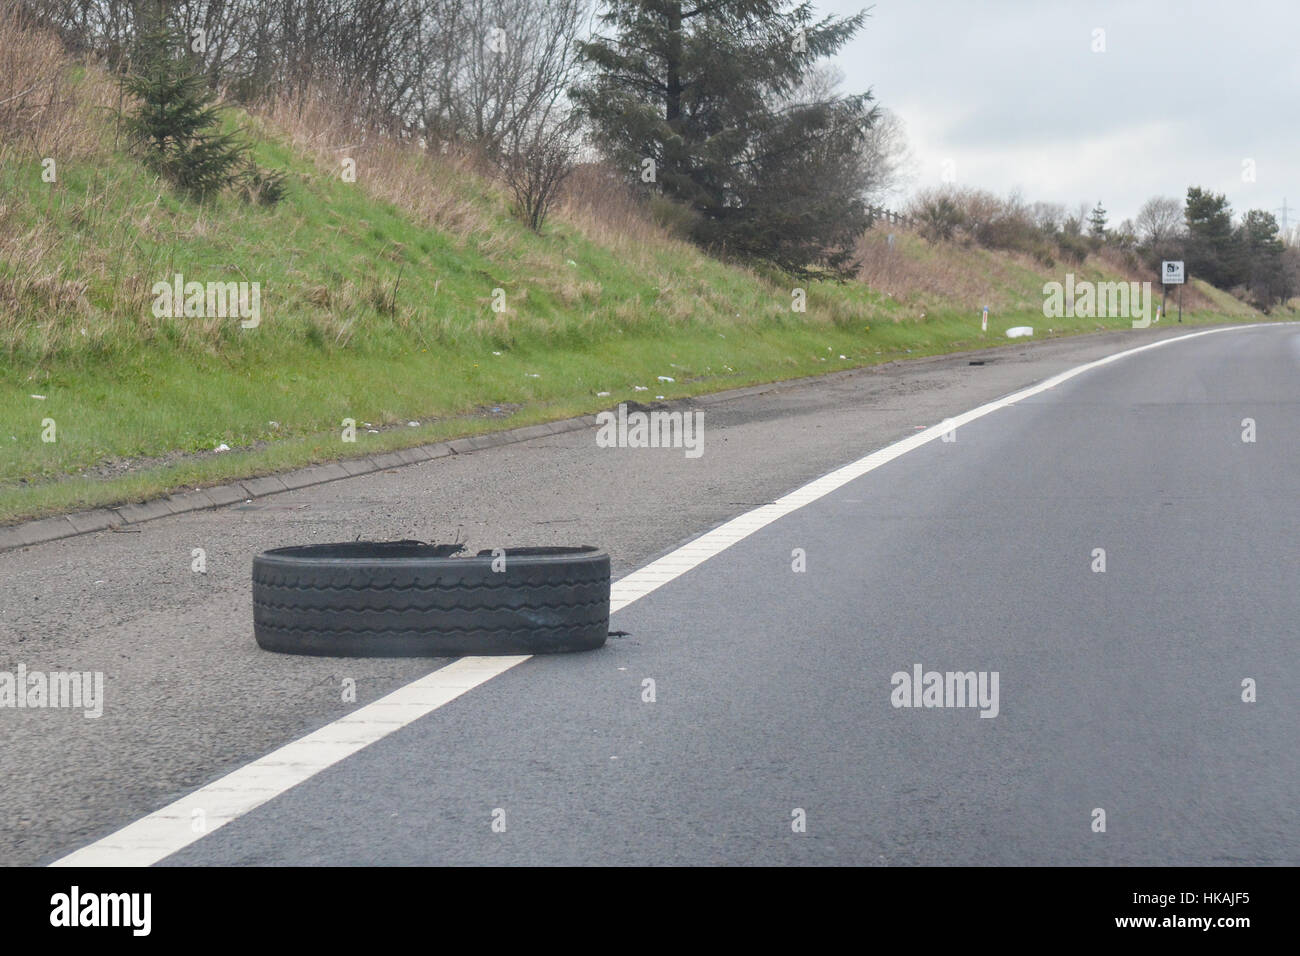 lorry tyre on motorway - UK - Stock Image